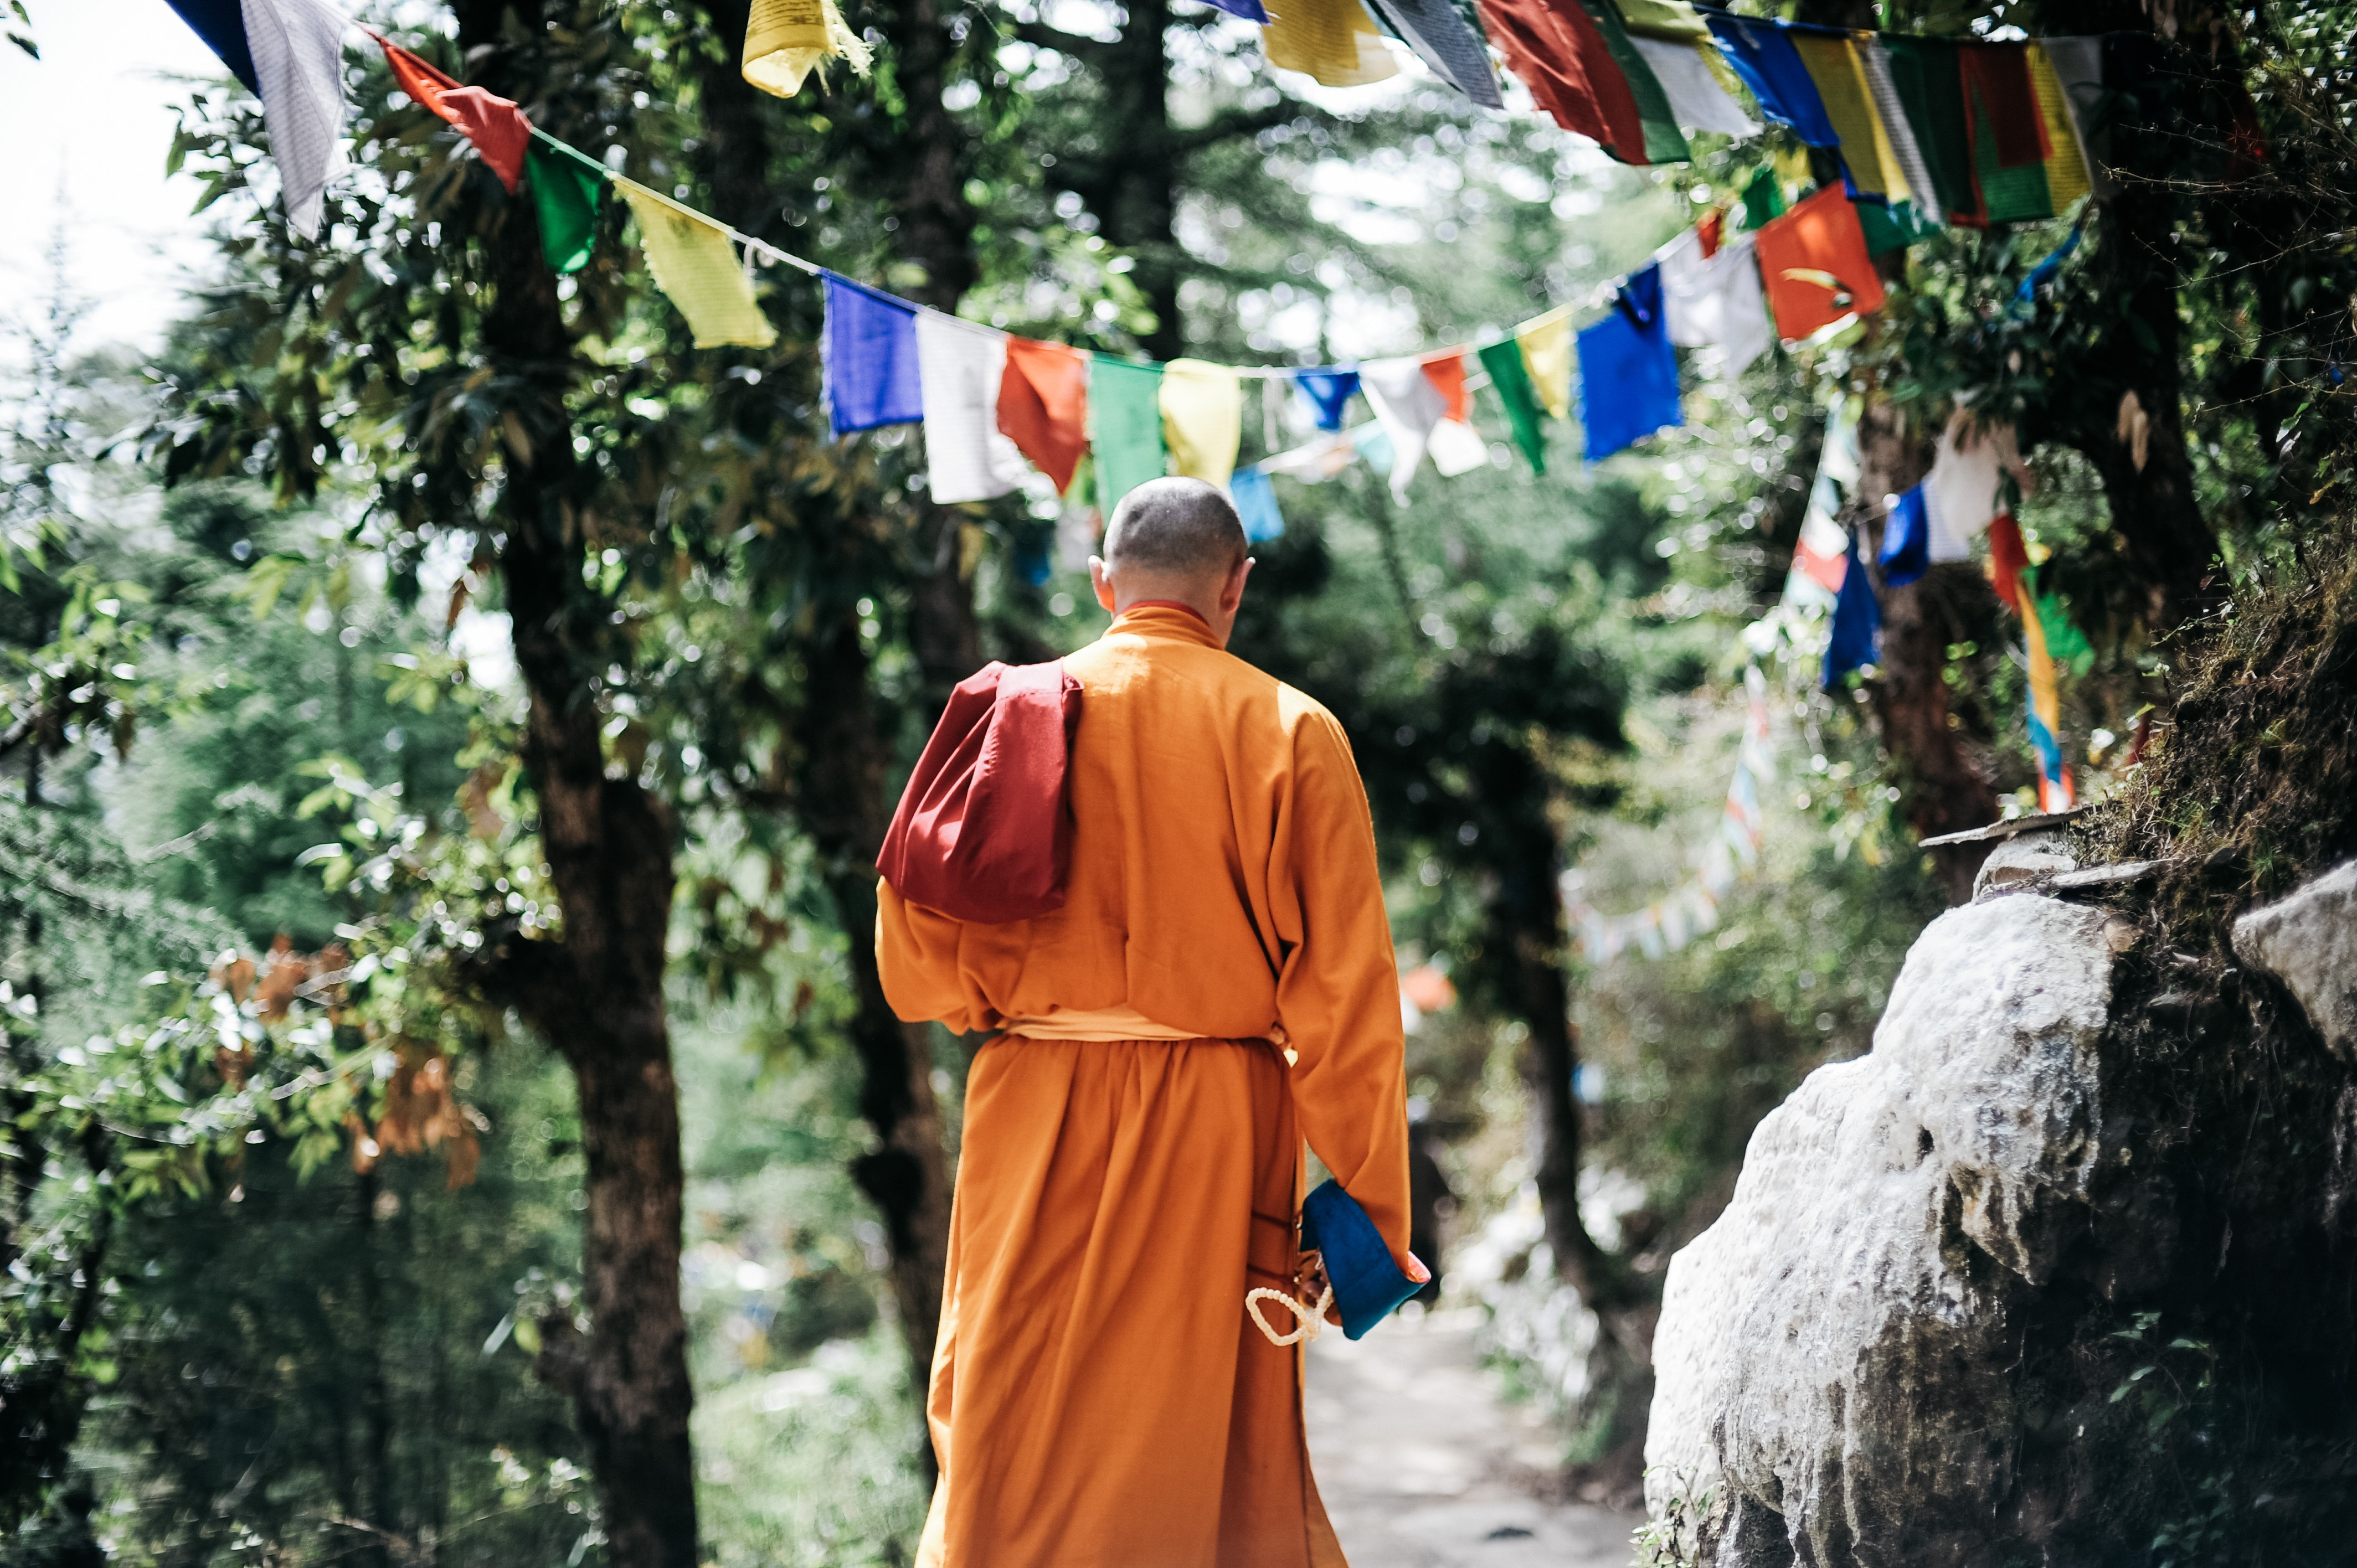 Monk Walking Near Buntings during Day, Adult, Pray, Wear, Trees, HQ Photo